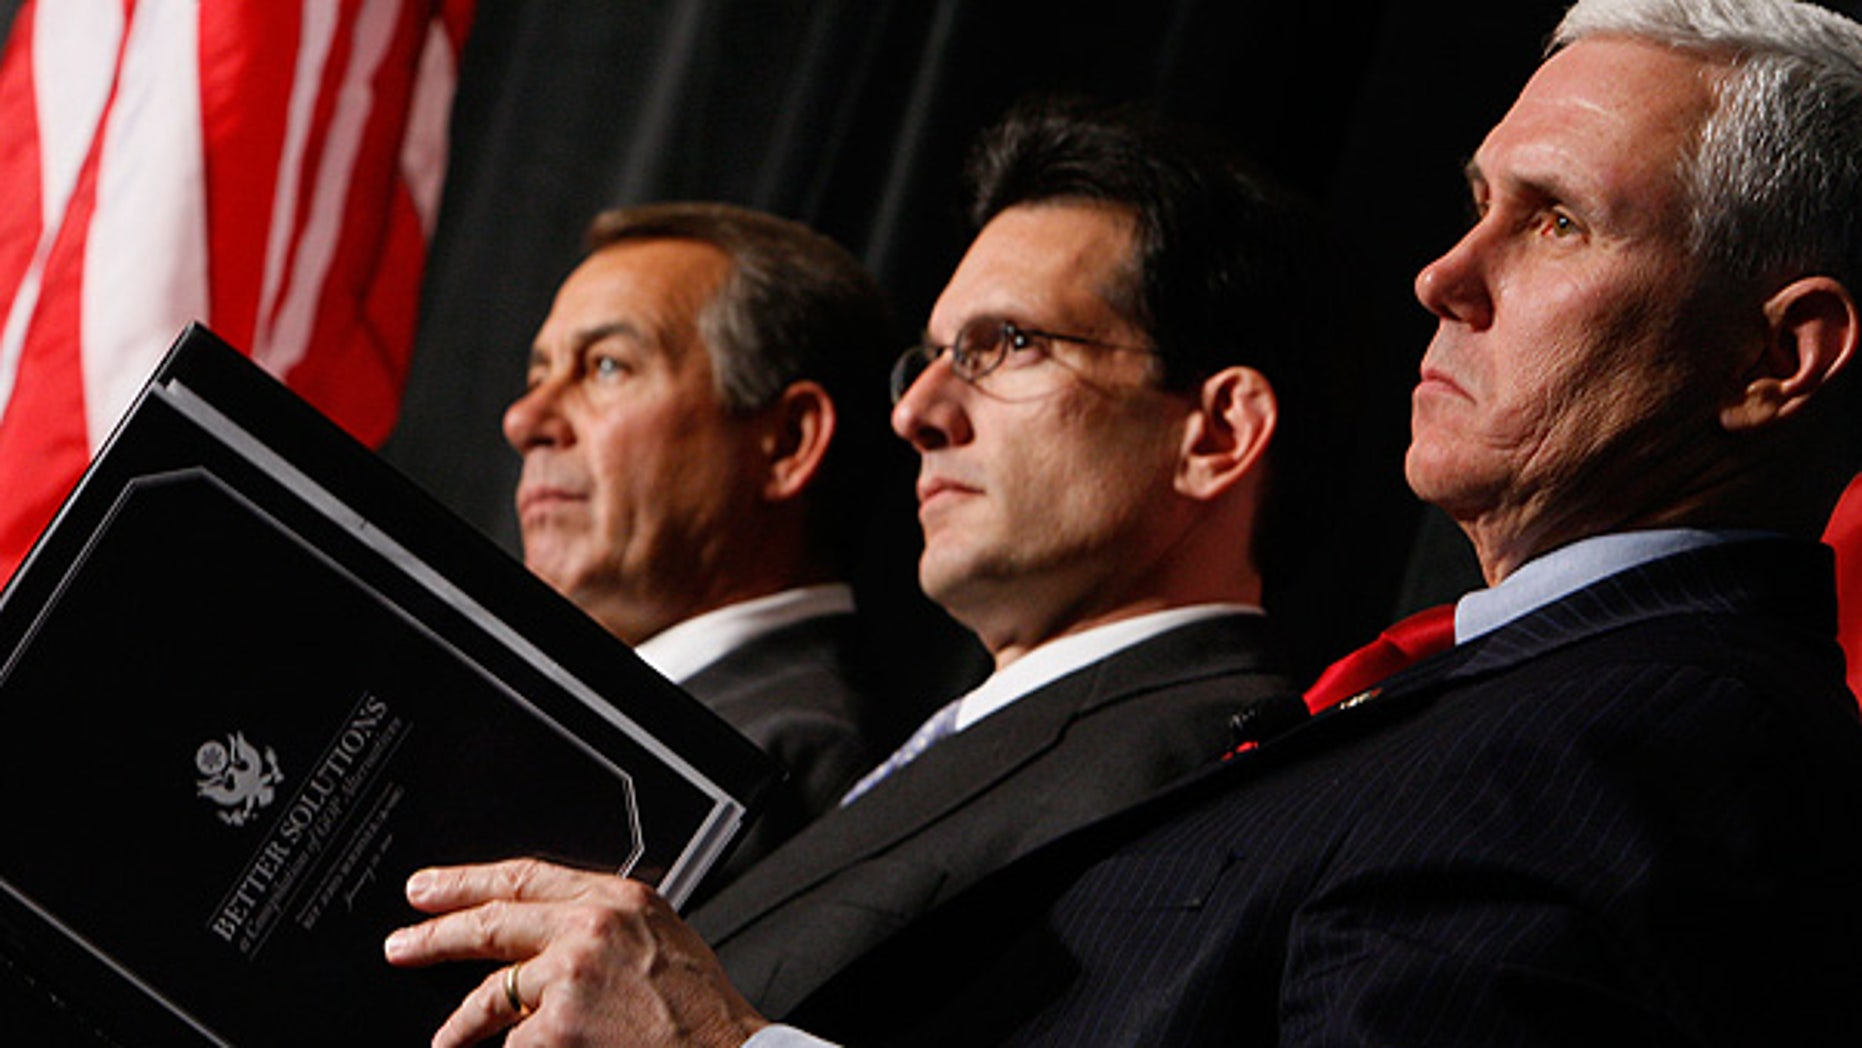 Jan. 29: House Minority Leader John Boehner, left, House Minority Whip Eric Cantor, center, and Rep. Mike Pence listen as President Obama speaks to Republican lawmakers.